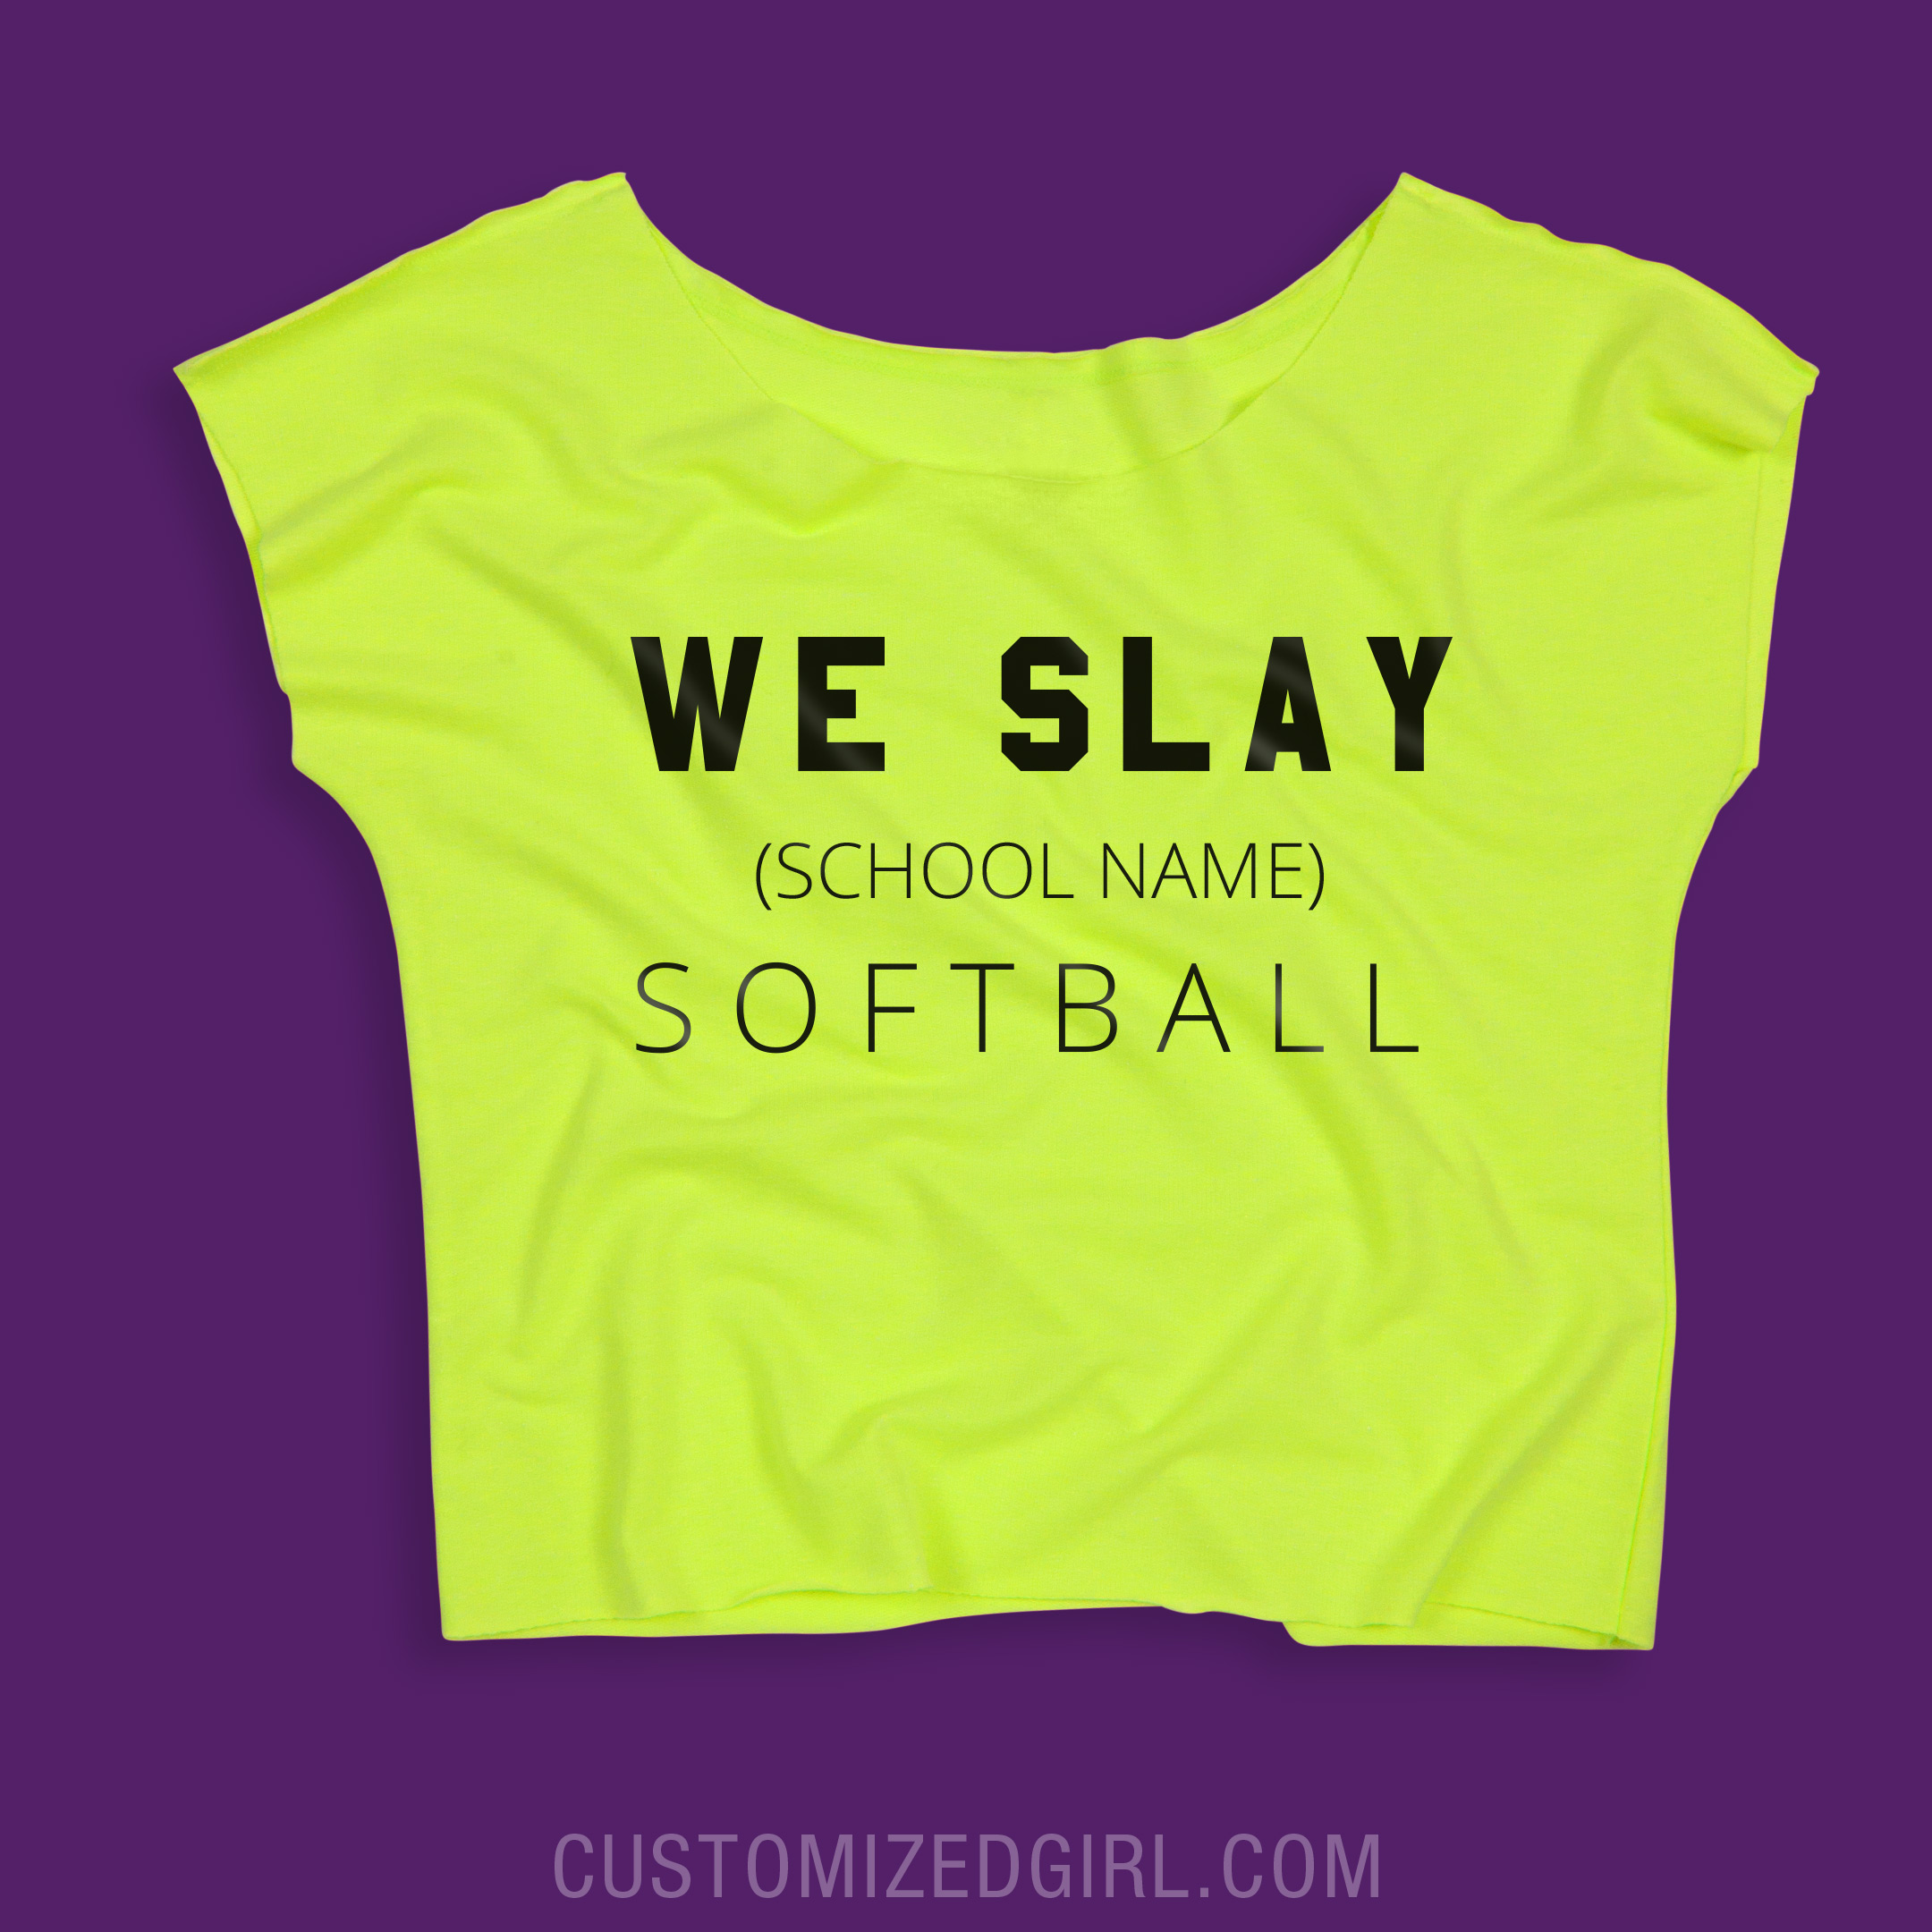 Softball Shirts Archives Customizedgirl Blog